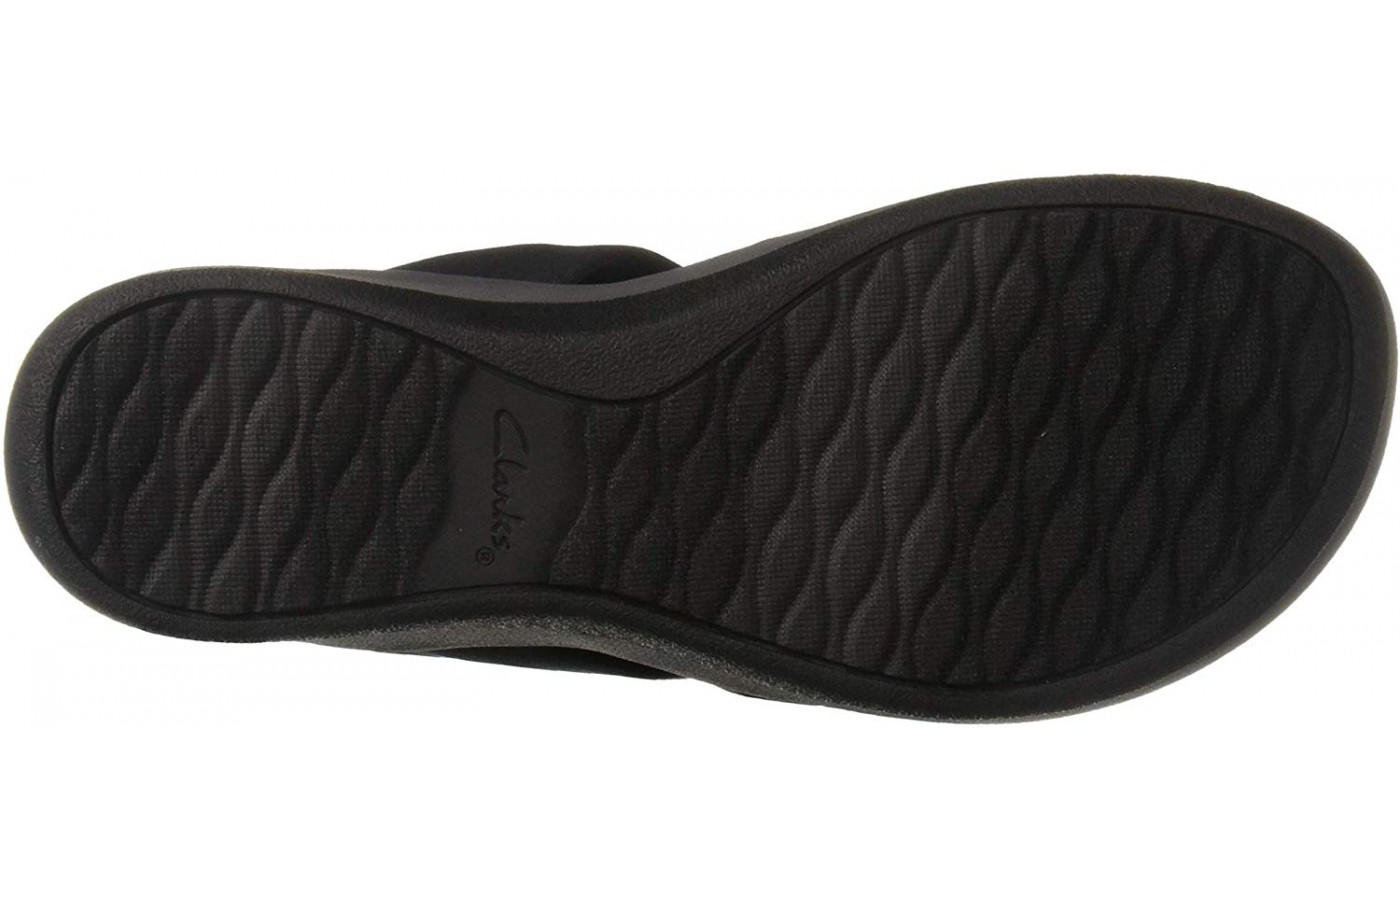 The traction on the outsole of the Arla Jane.